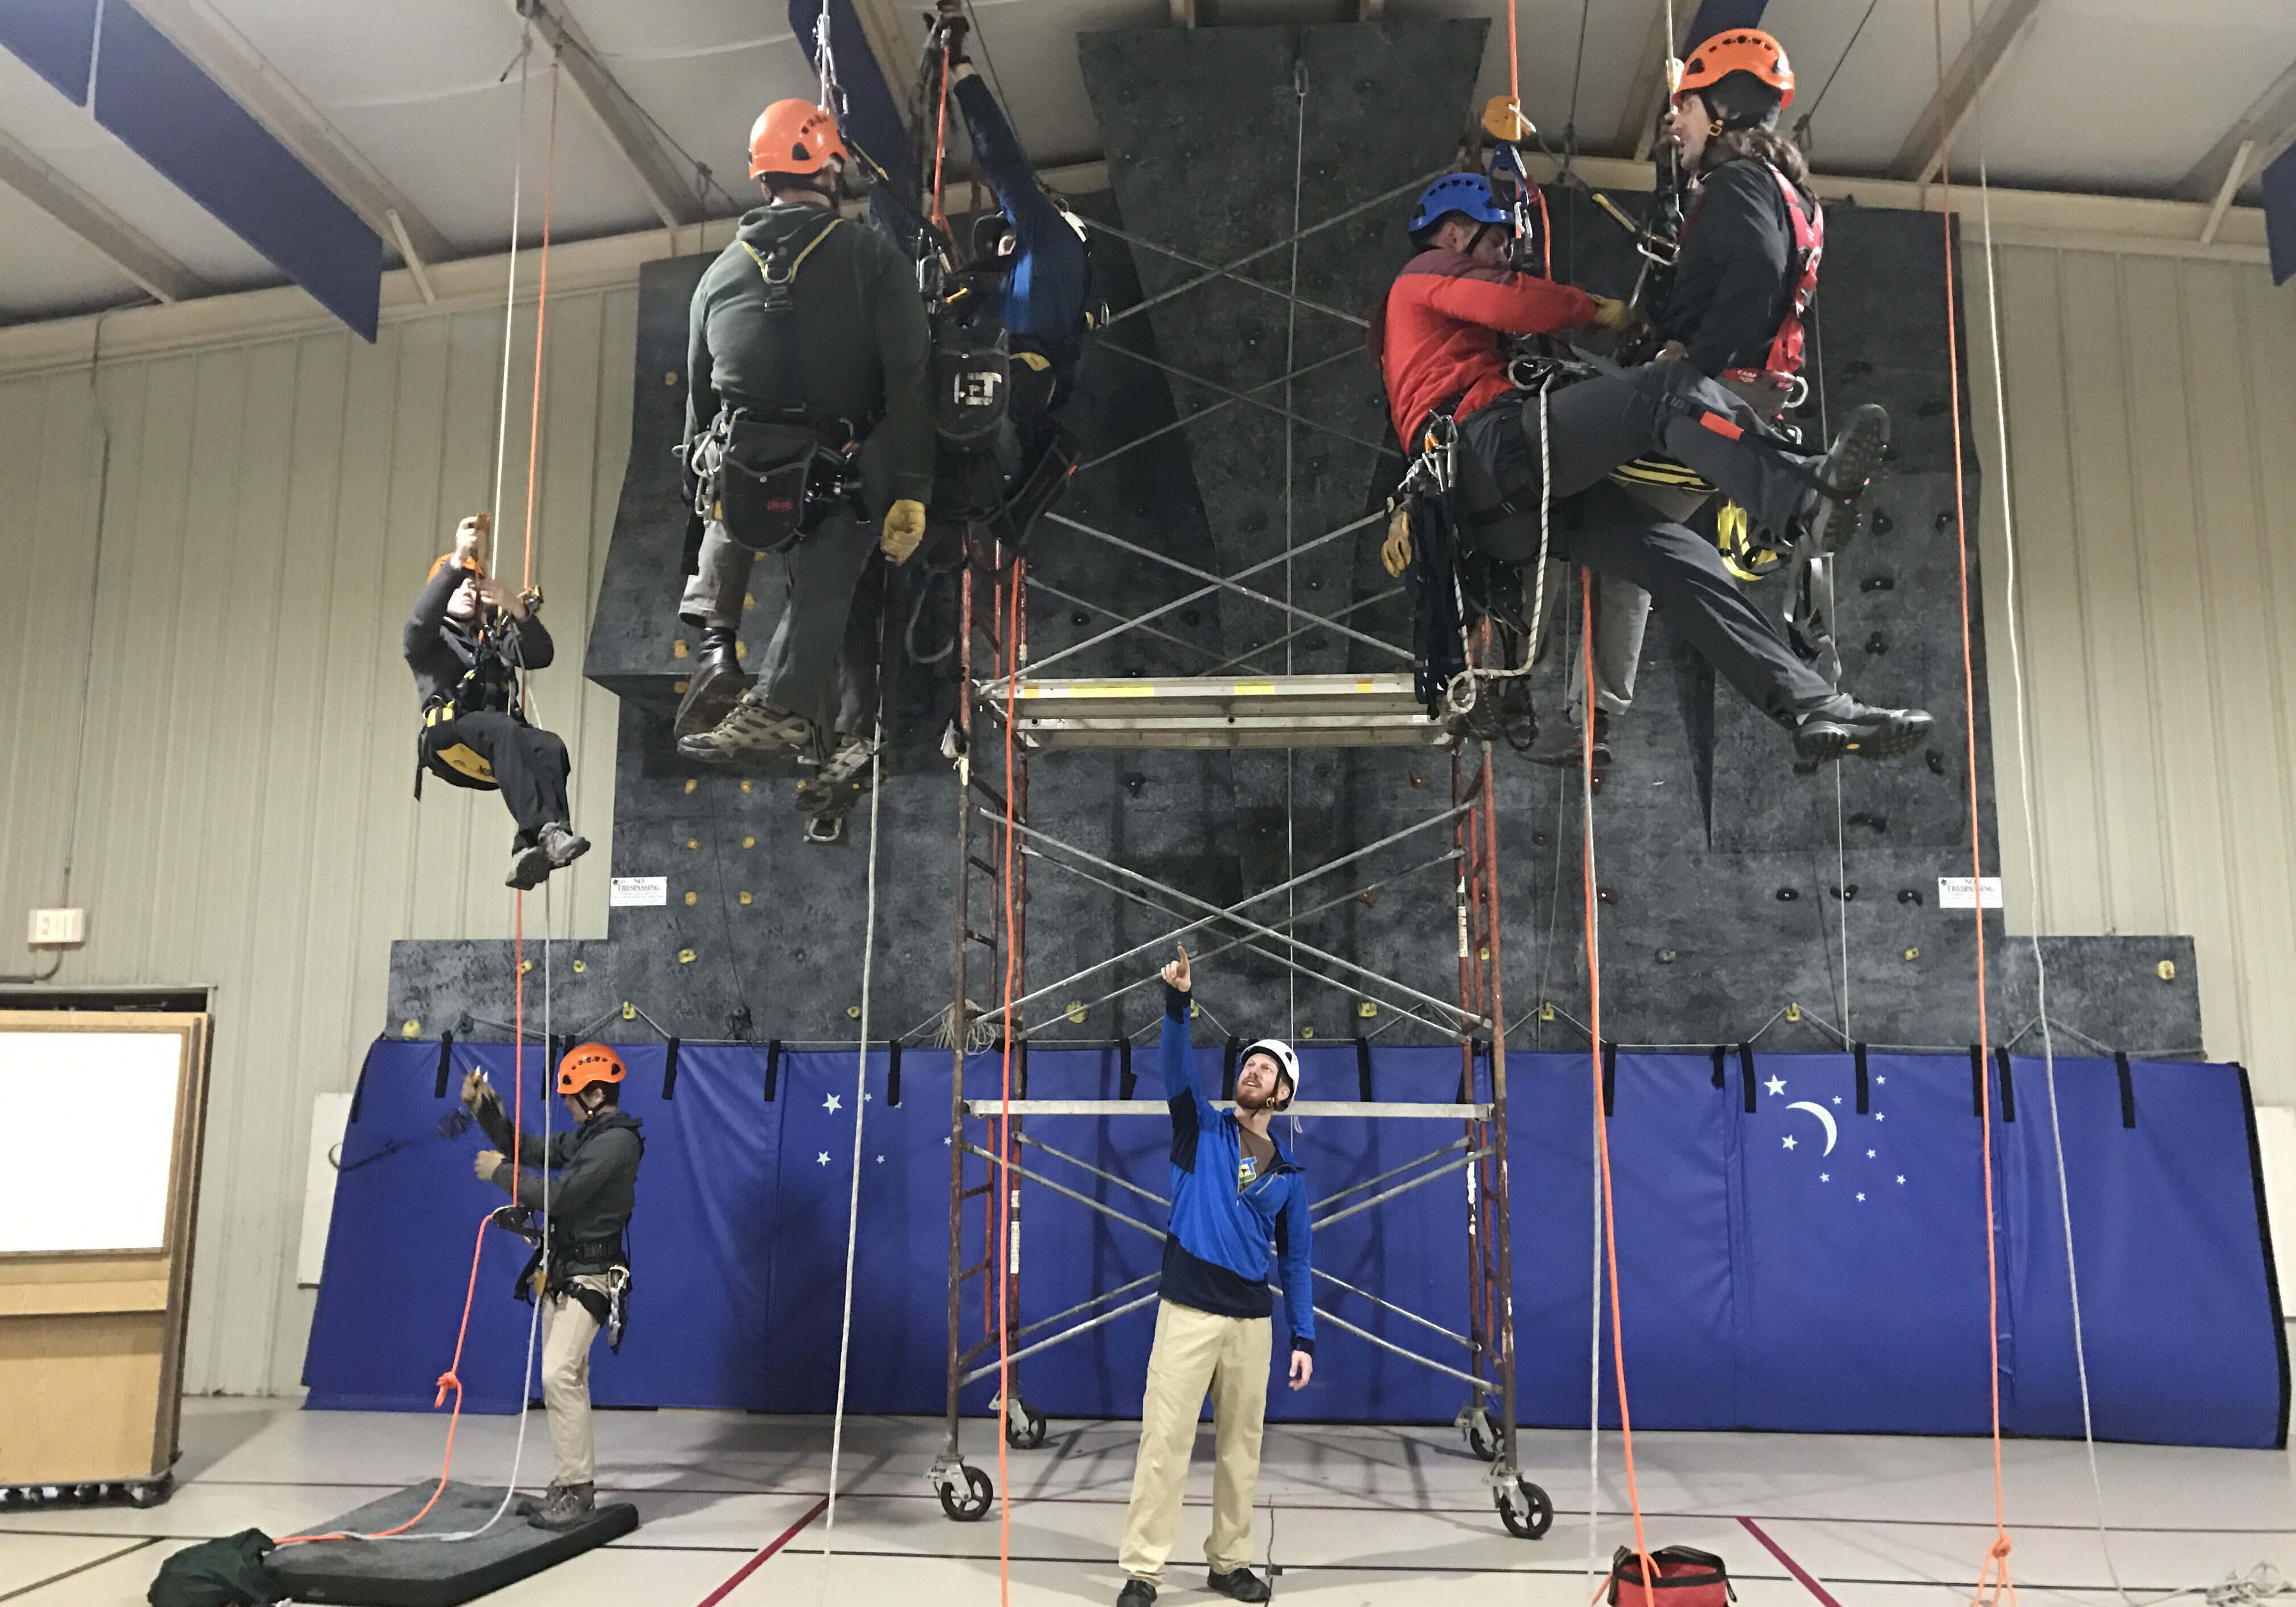 rope-access-training-challenge-towers-zip-line-challenge-course-builder-inspector